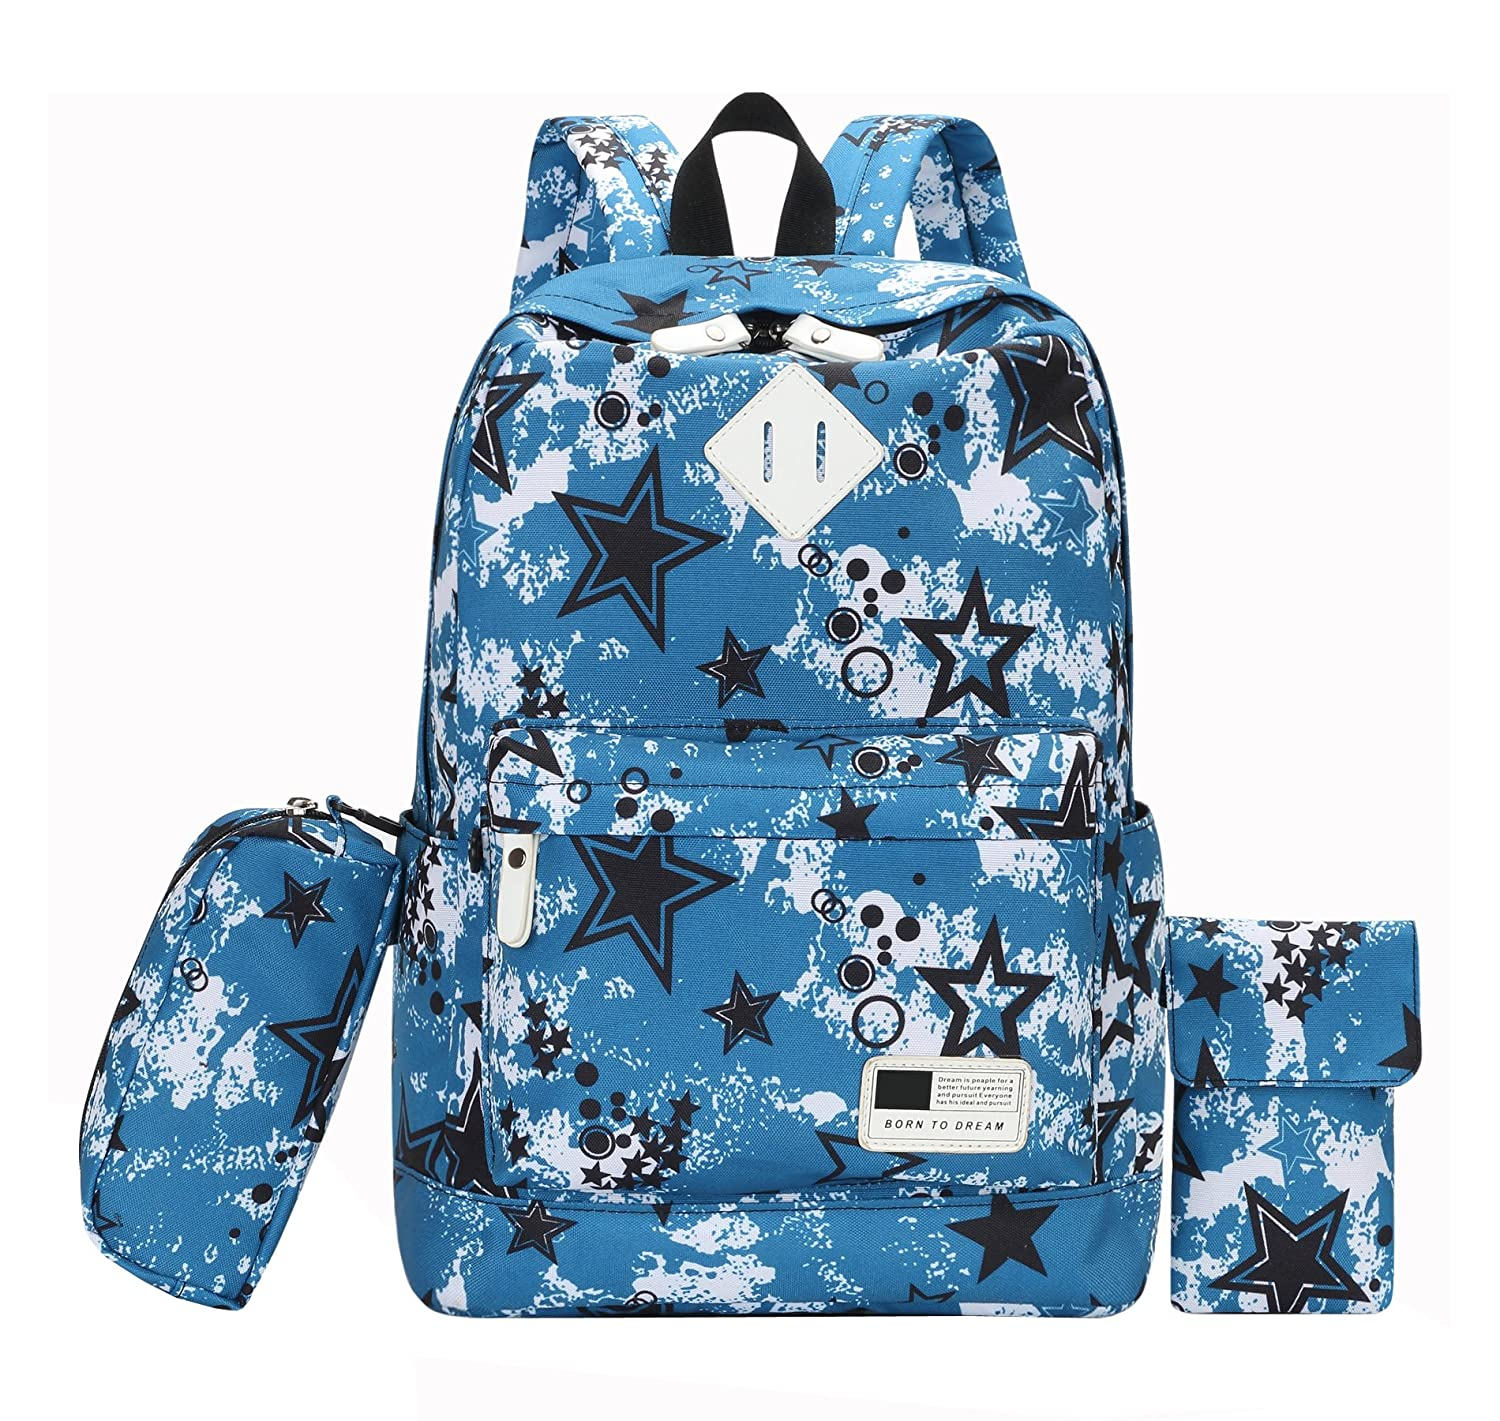 e50cc7a7ab69 AnKoee 3-in-1 School Bag (Comes with a pencil bag and a cell phone ...